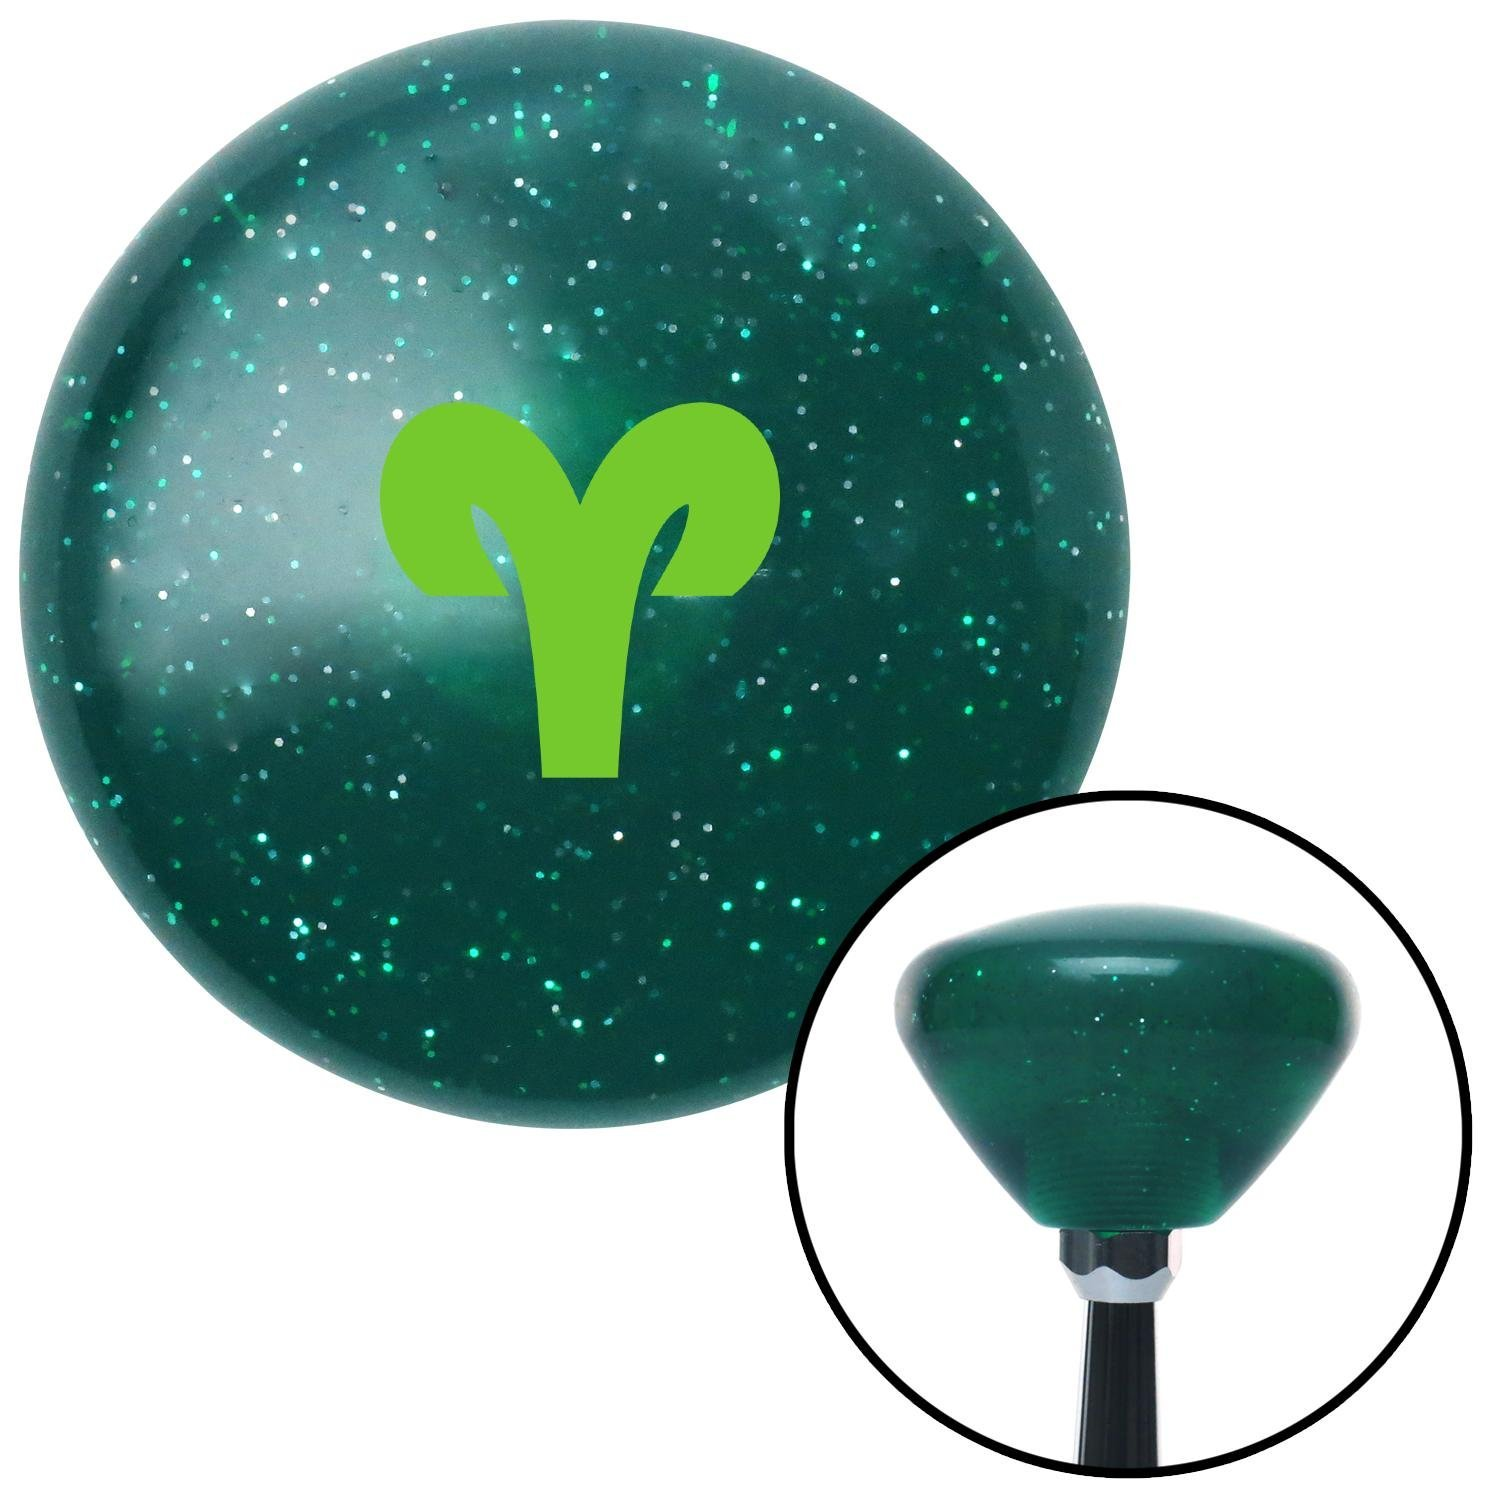 American Shifter 291874 Shift Knob Green Aries Green Retro Metal Flake with M16 x 1.5 Insert